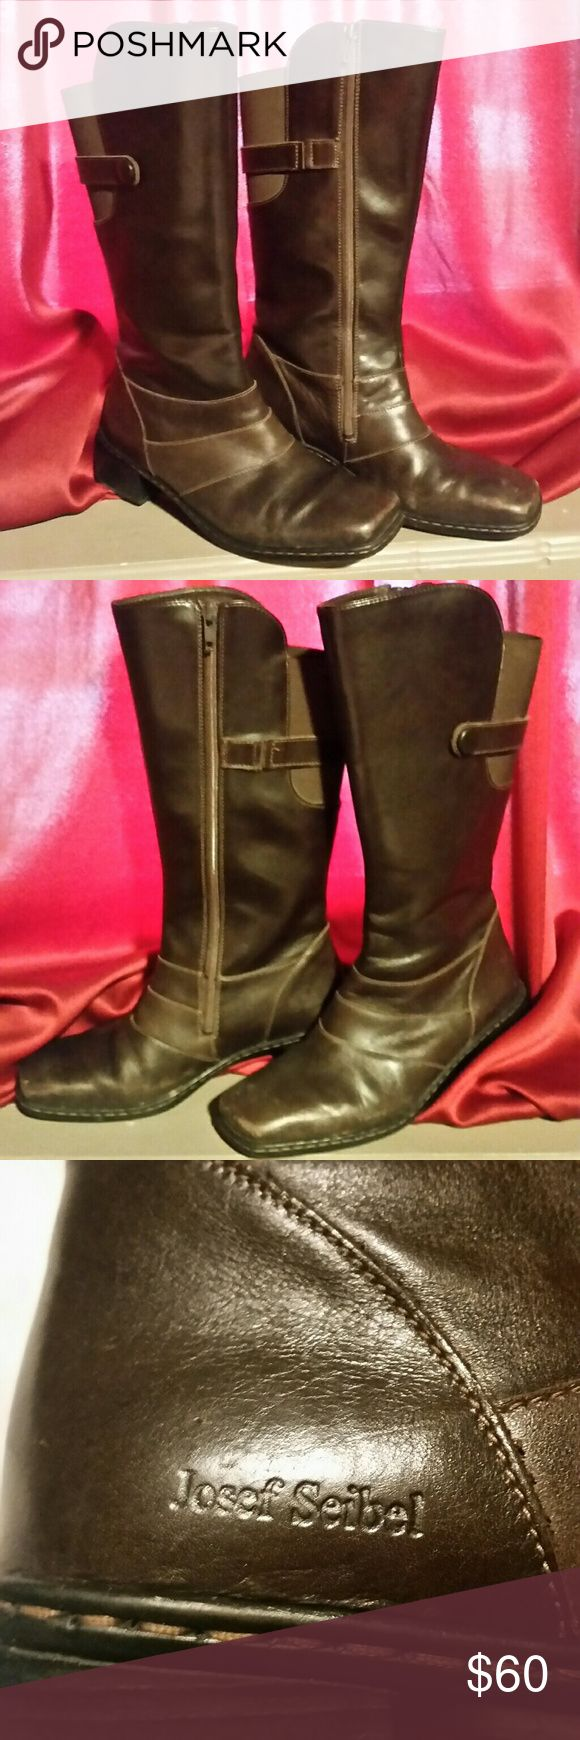 Josef Seibel Brown Leather Boots Size~40 In good used condition. Some scuffs, I have not polished them. Serial # in photo 5. These need a good home, been in my closet with 1000 other boots. Josef Seibel Shoes Heeled Boots